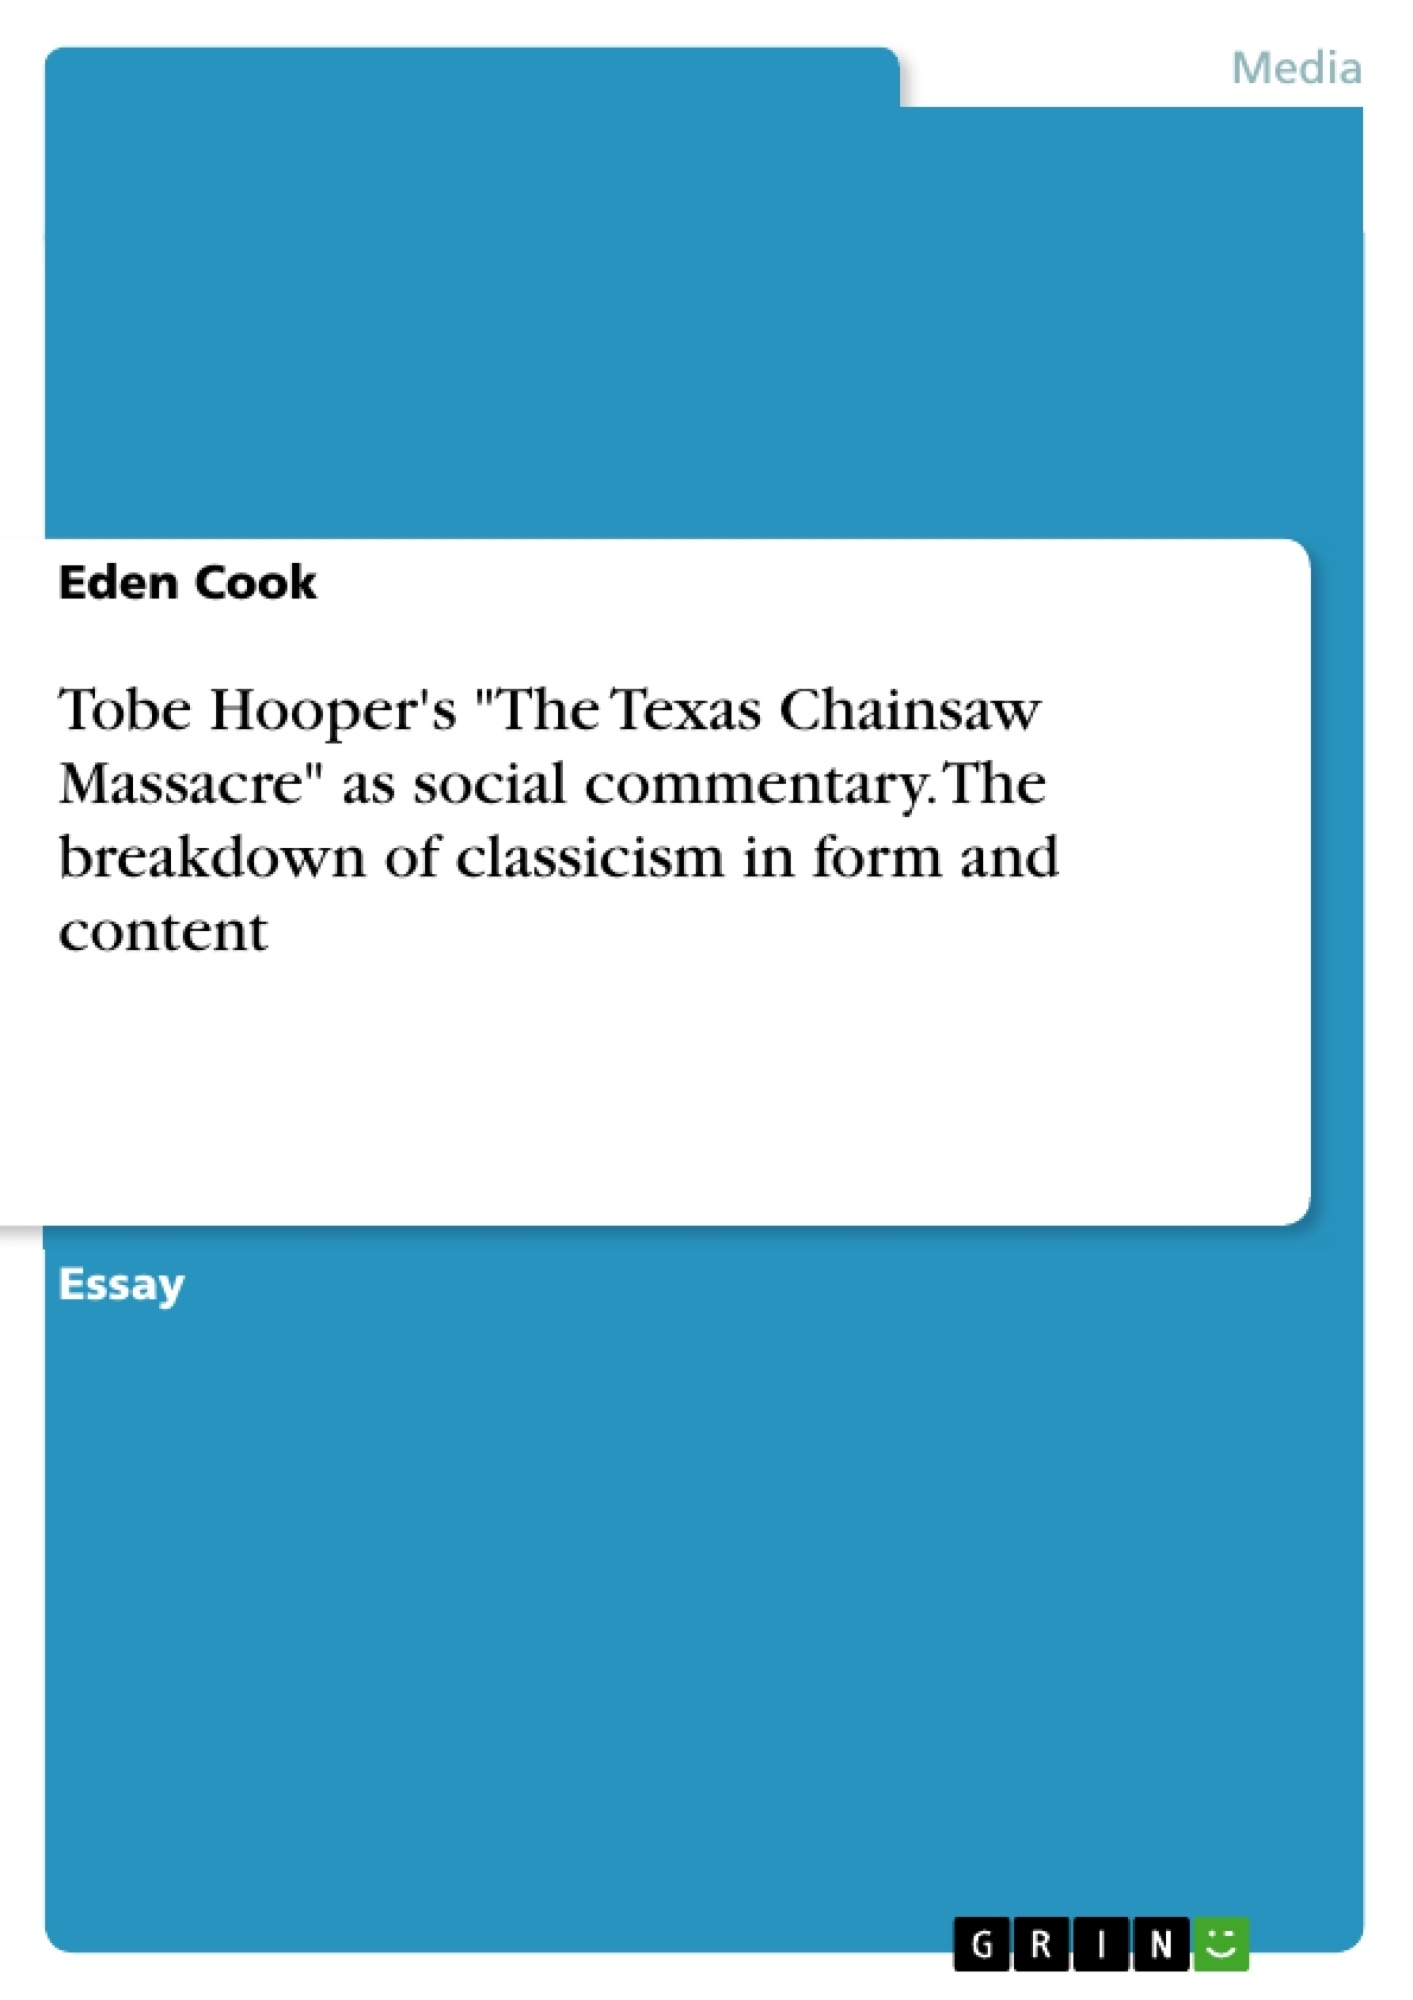 tobe hooper s the texas chainsaw massacre as social commentary upload your own papers earn money and win an iphone 7